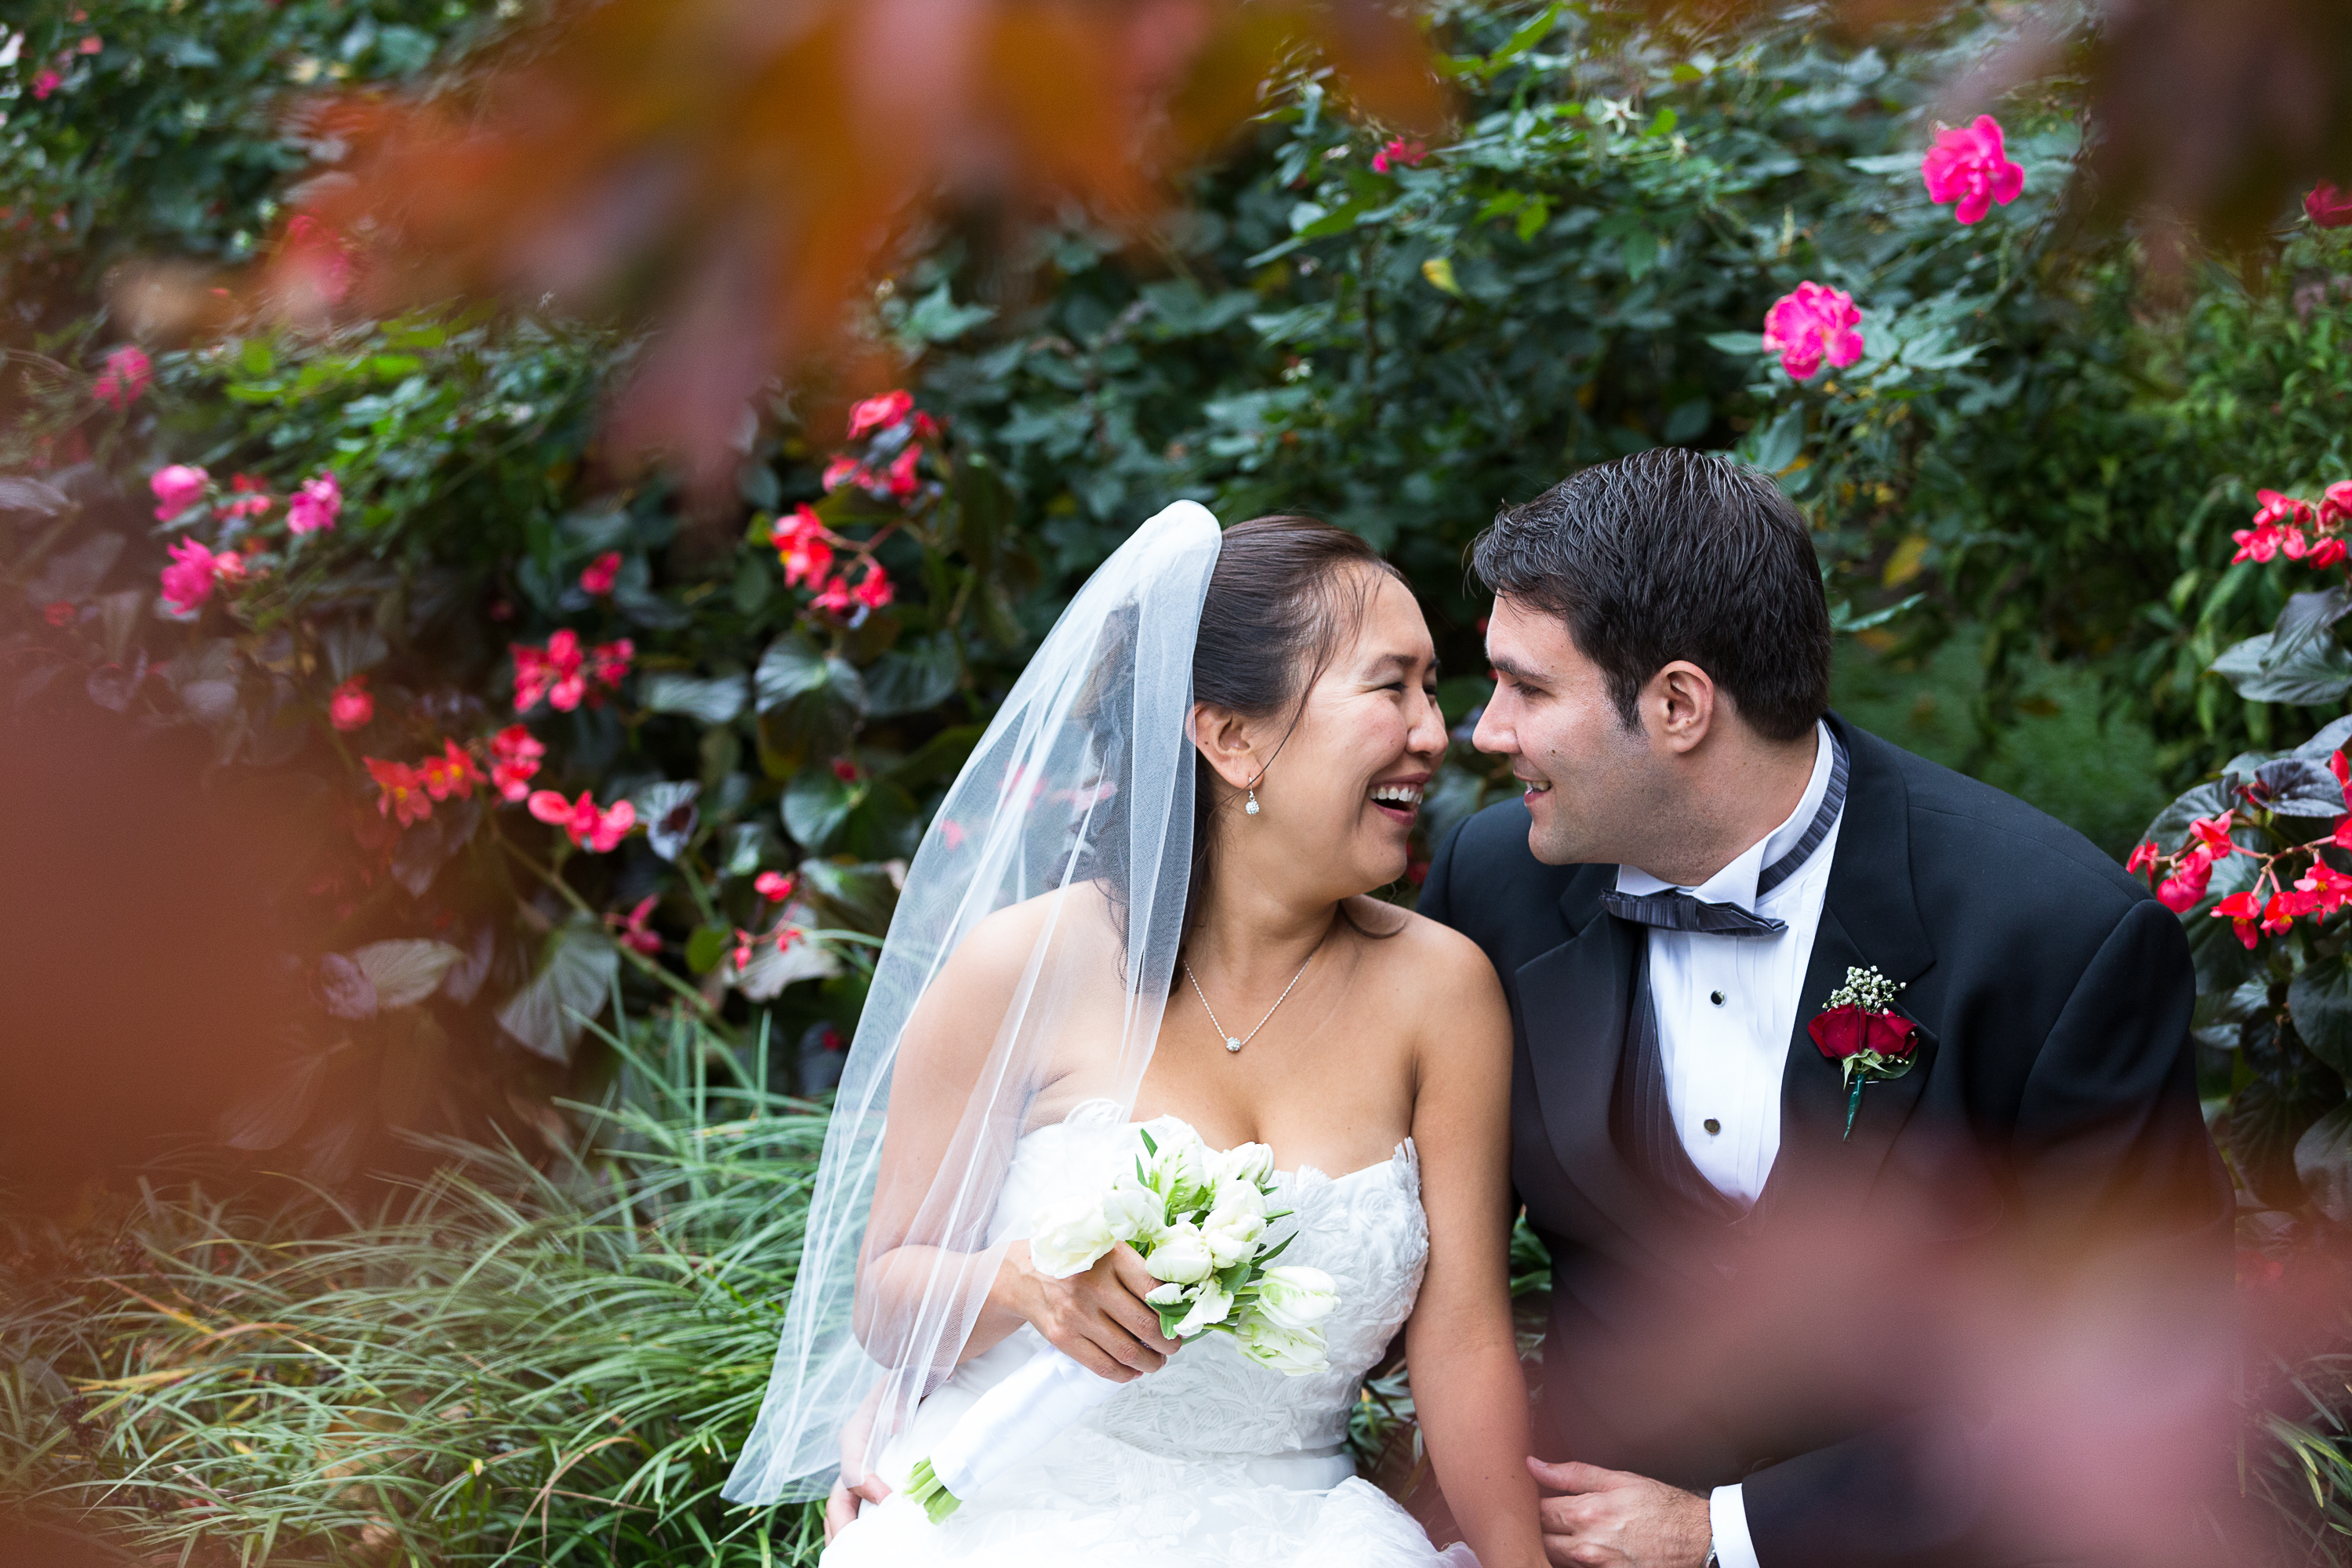 bride-and-groom-snuggle-among-flowers